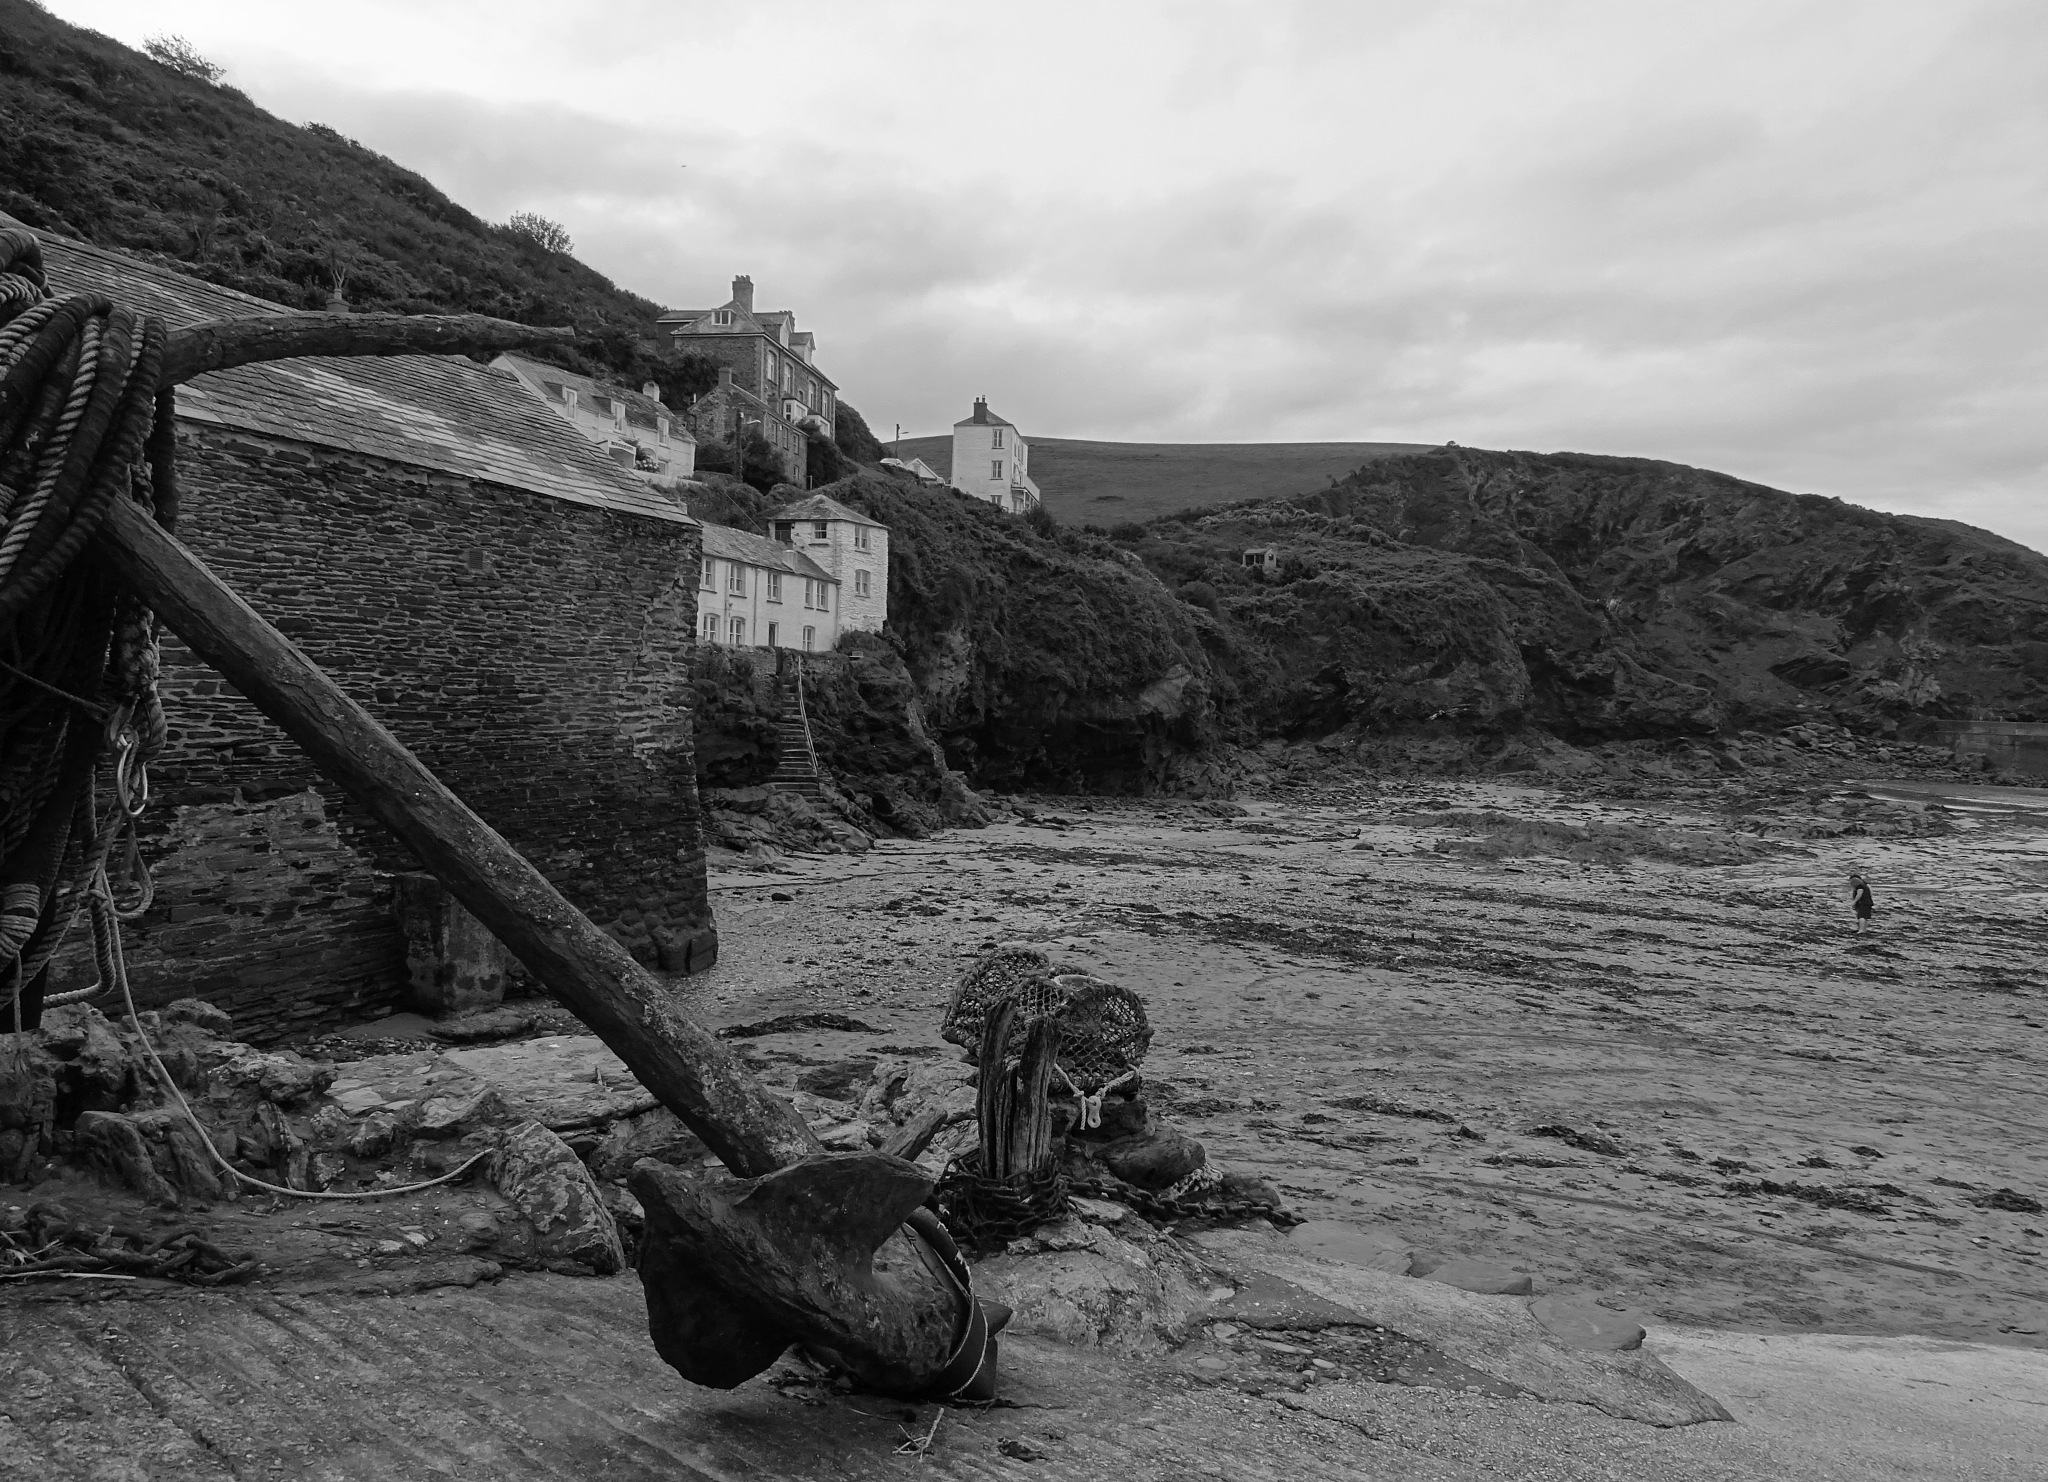 PORT ISAAC by BugOlsson